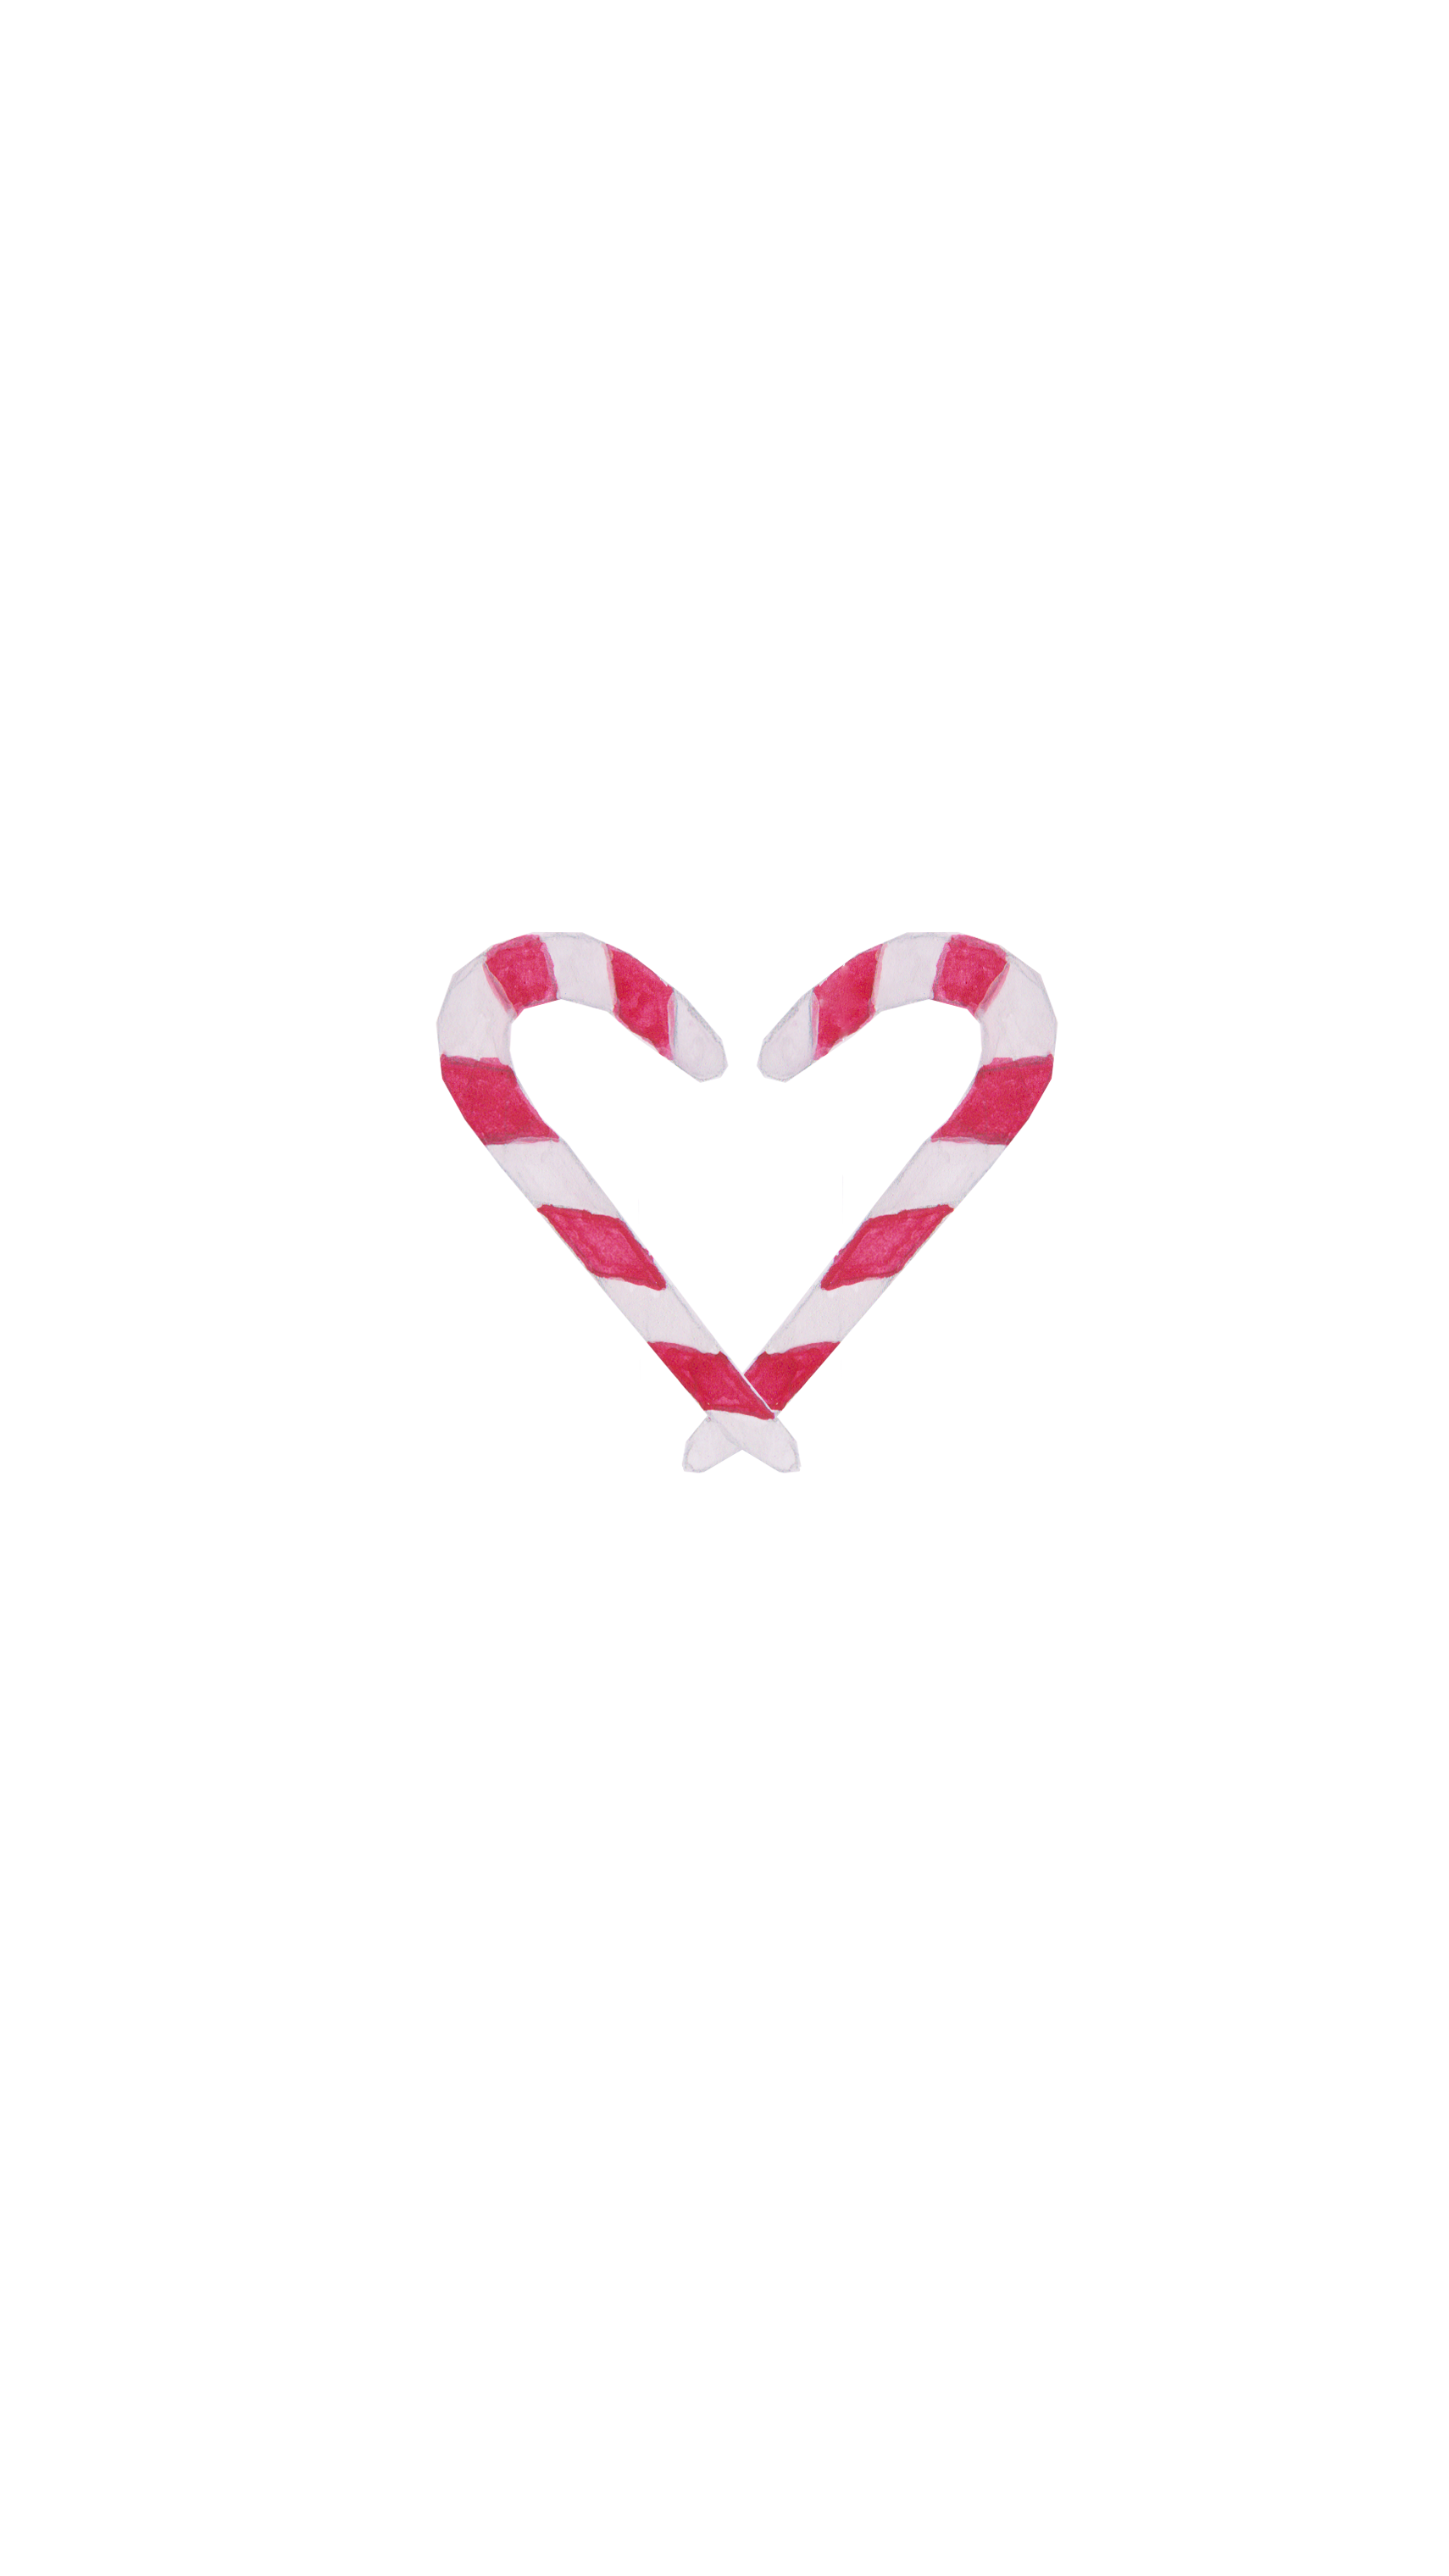 Candy Cane Christmas Heart Watercolor Phone Wallpaper Wallpaper Iphone Christmas Cellphone Wallpaper Christmas Candy Cane